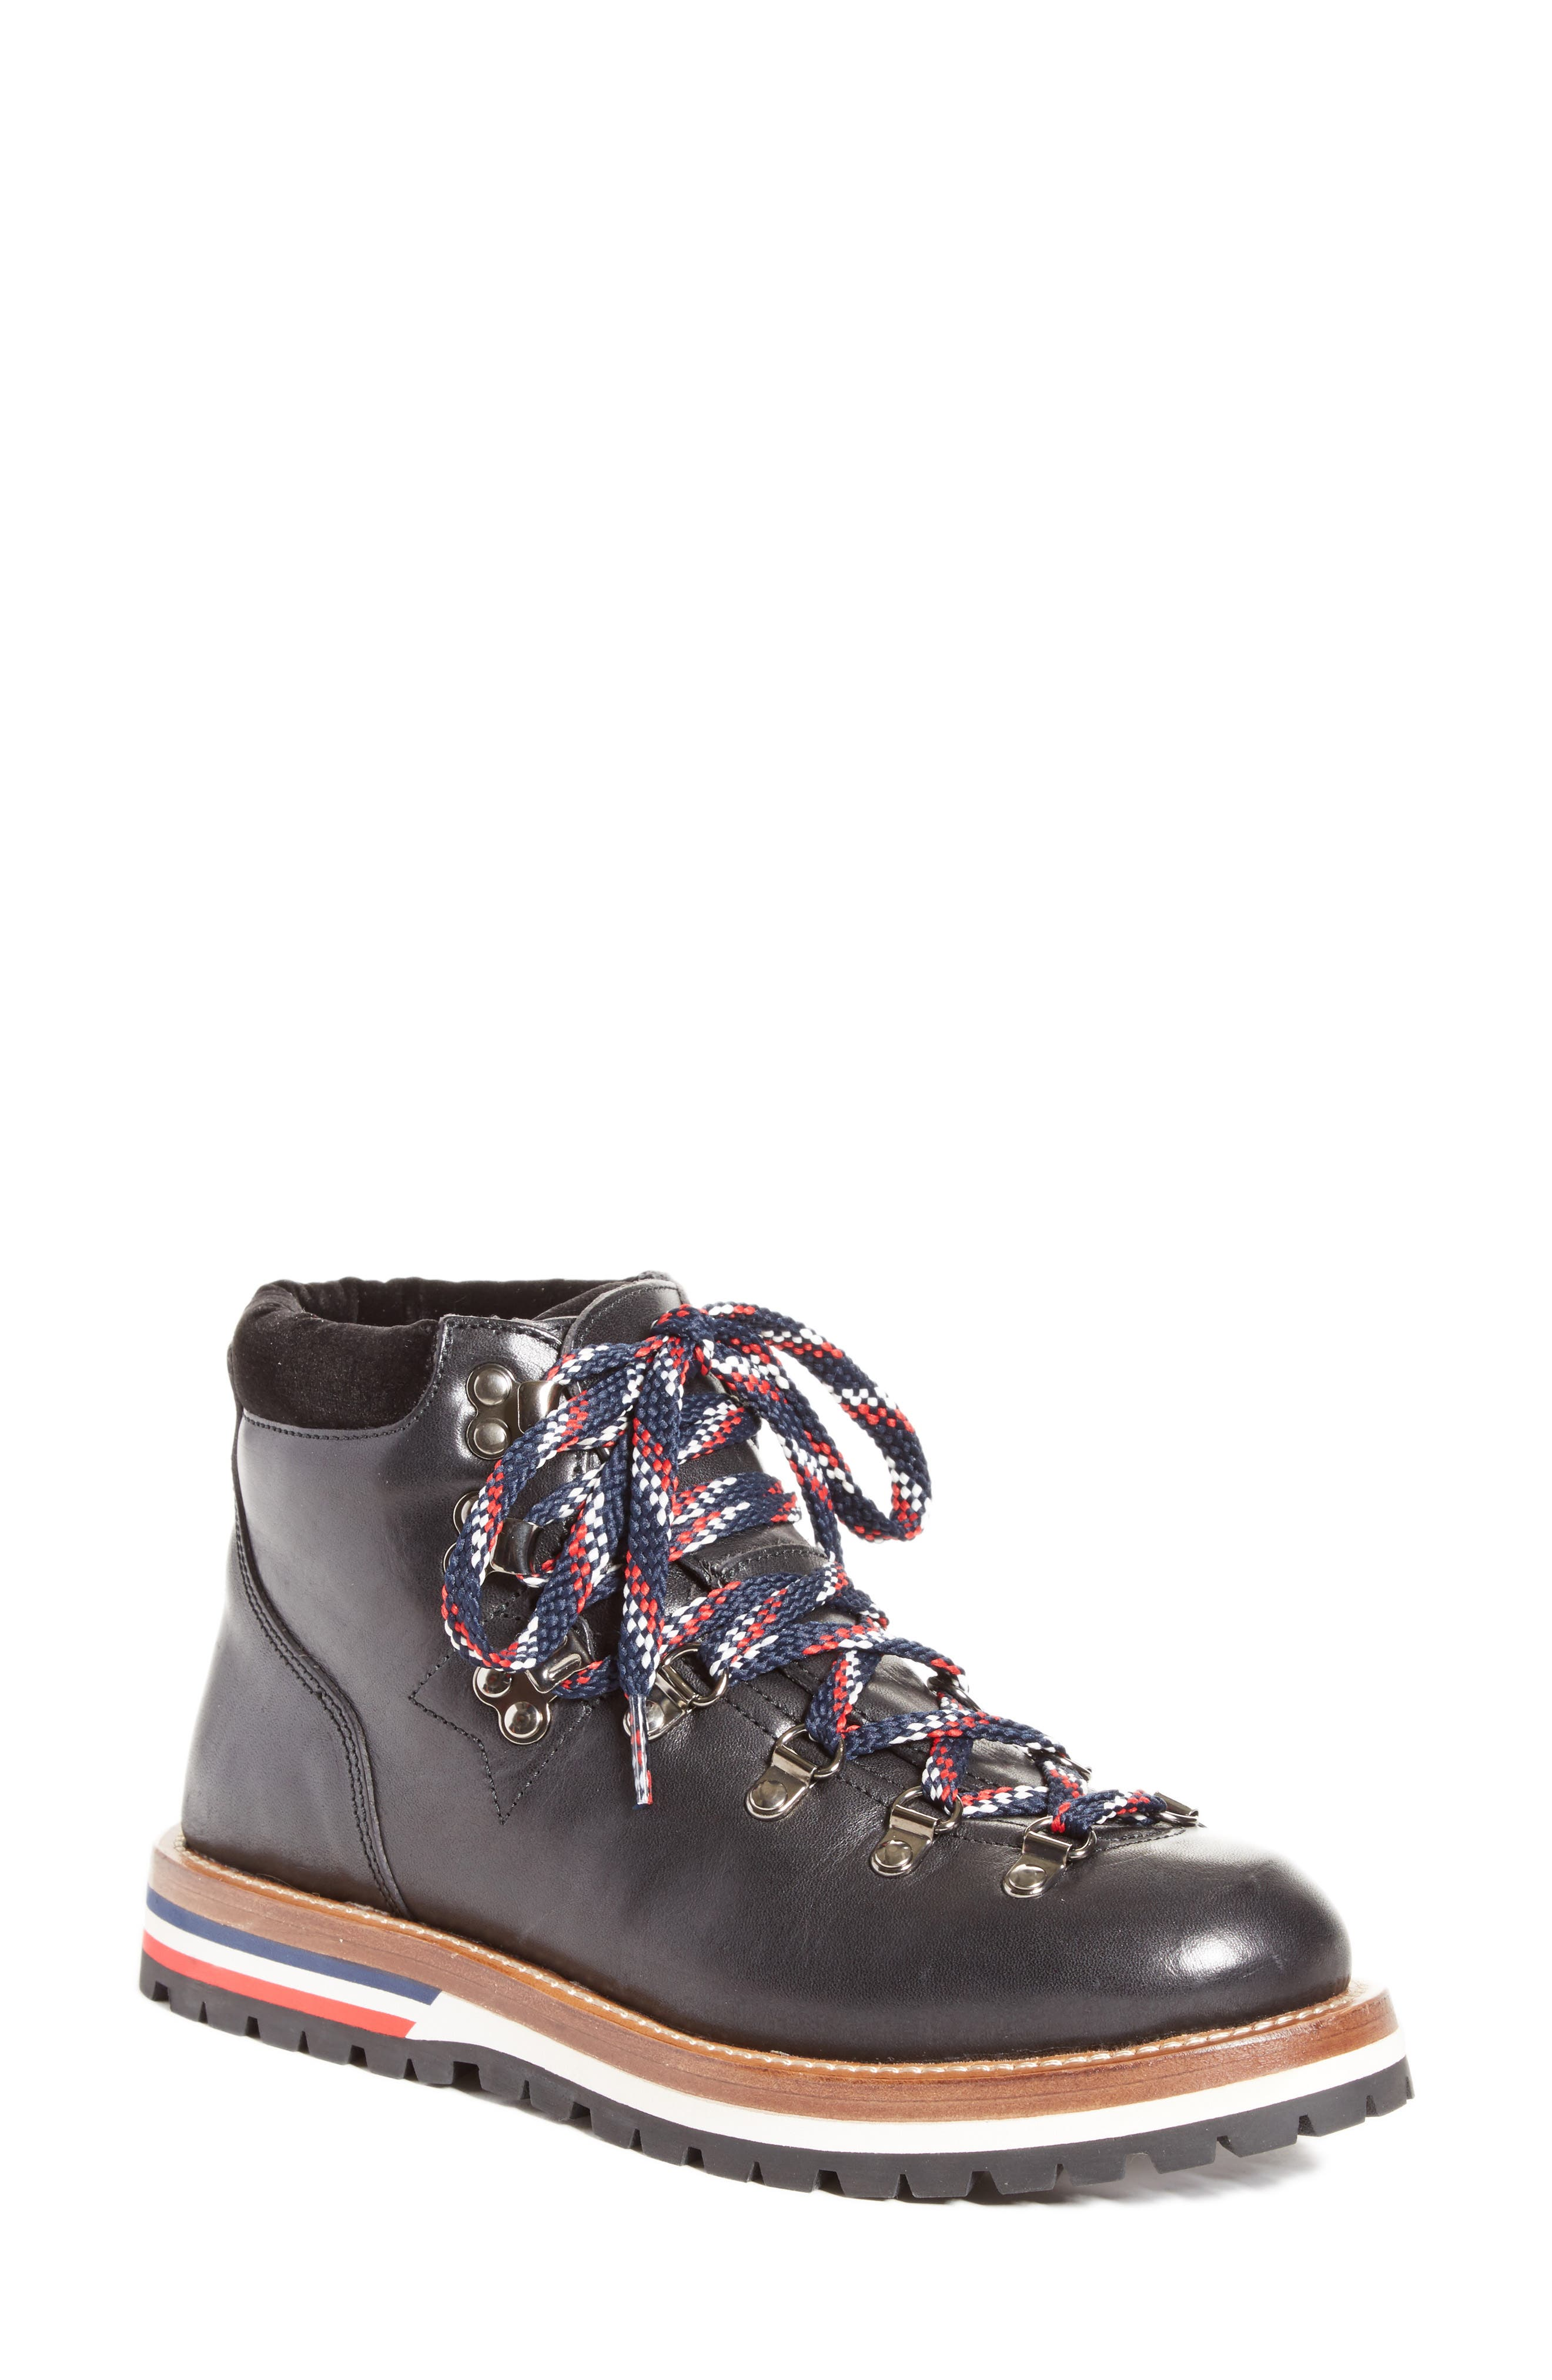 Blanche Lace-up Boot,                             Main thumbnail 1, color,                             BLACK